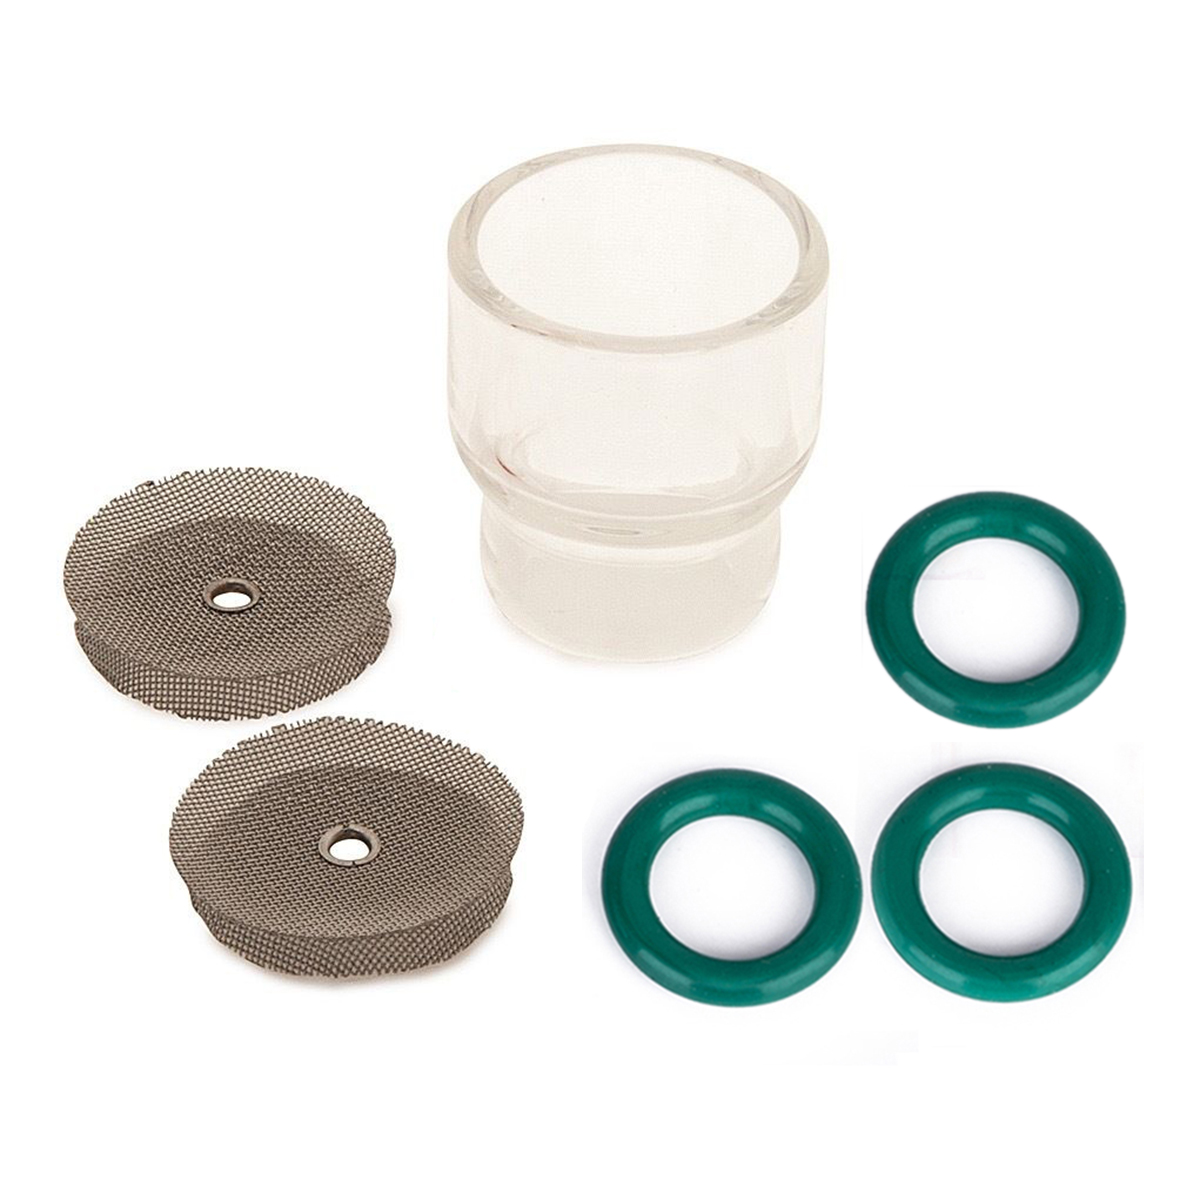 Welding Cup for WP-9//17 Tig Filters with Kit Mayitr Size #12 2.4mm and